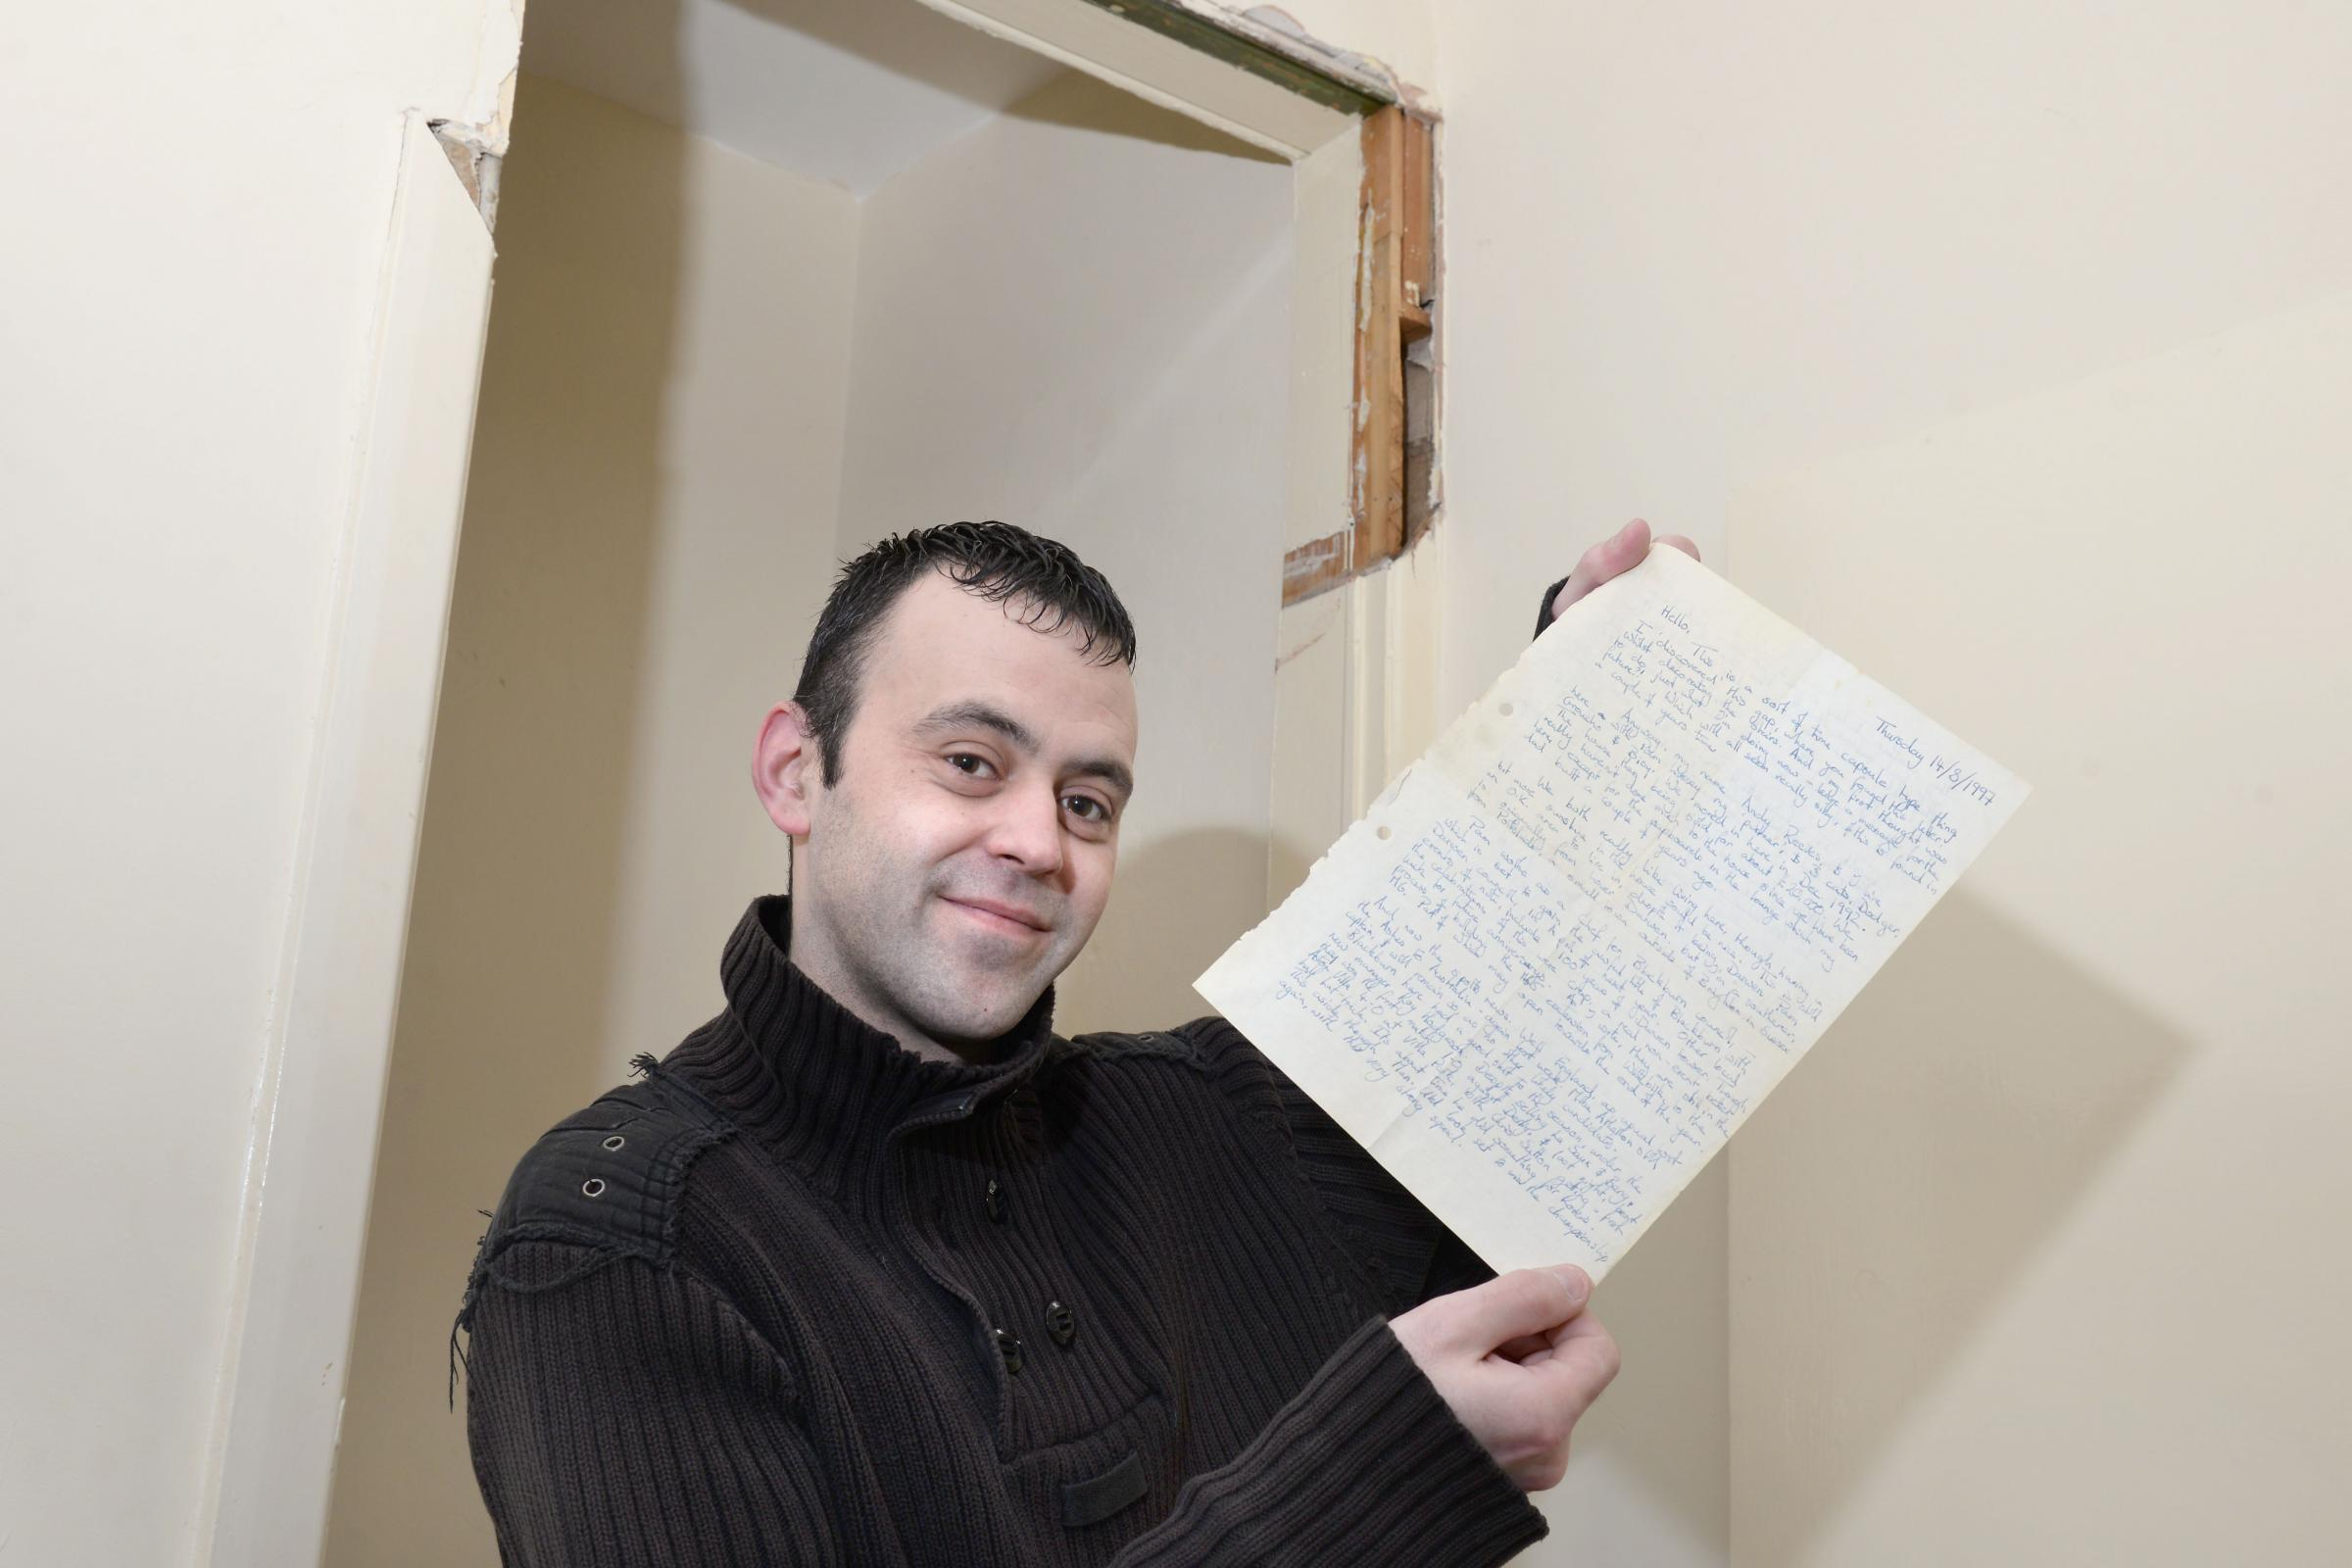 Paul McAuley when he found a time capsule letter in the wall of his house dating from 20 years ago